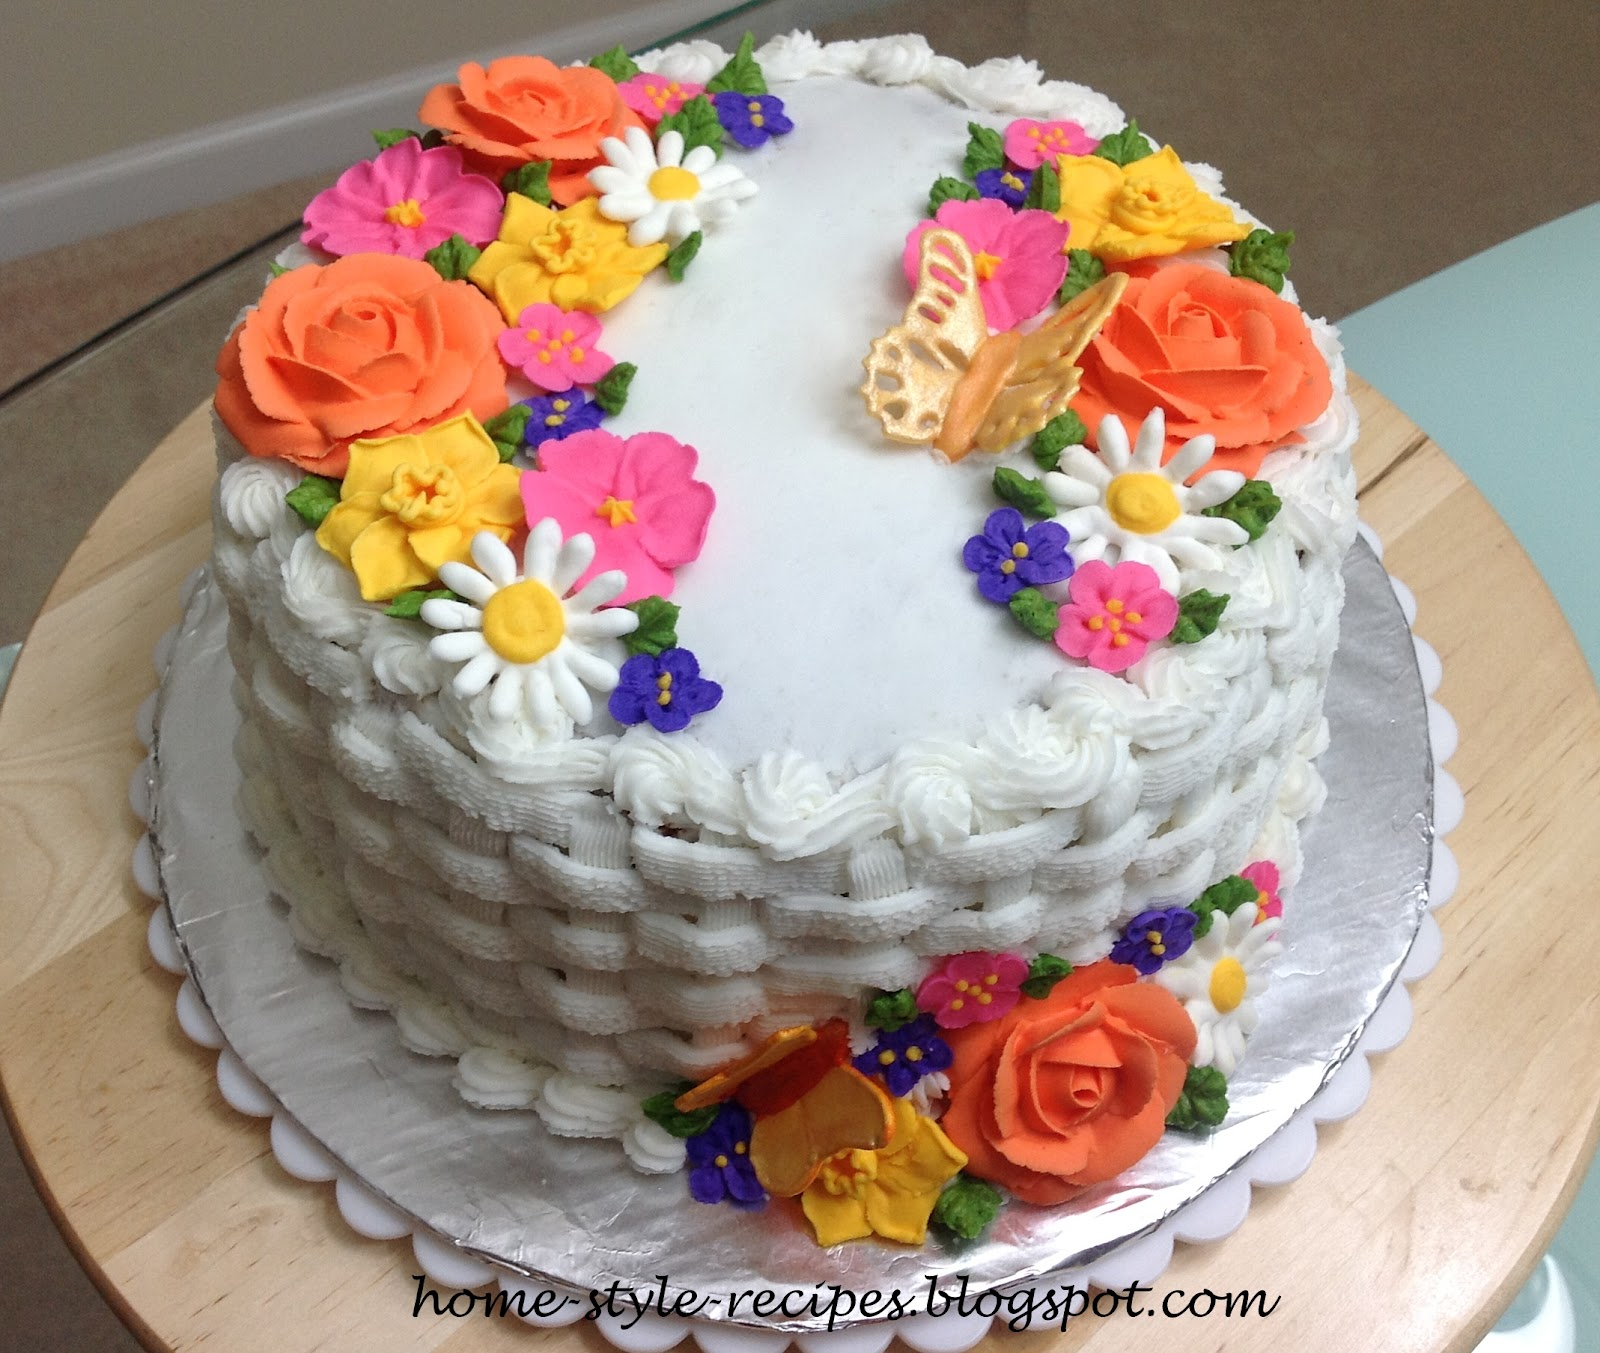 Wilton Flower And Cake Design Book : Wilton Course 2 Cake Ideas on Pinterest Brush Embroidery ...